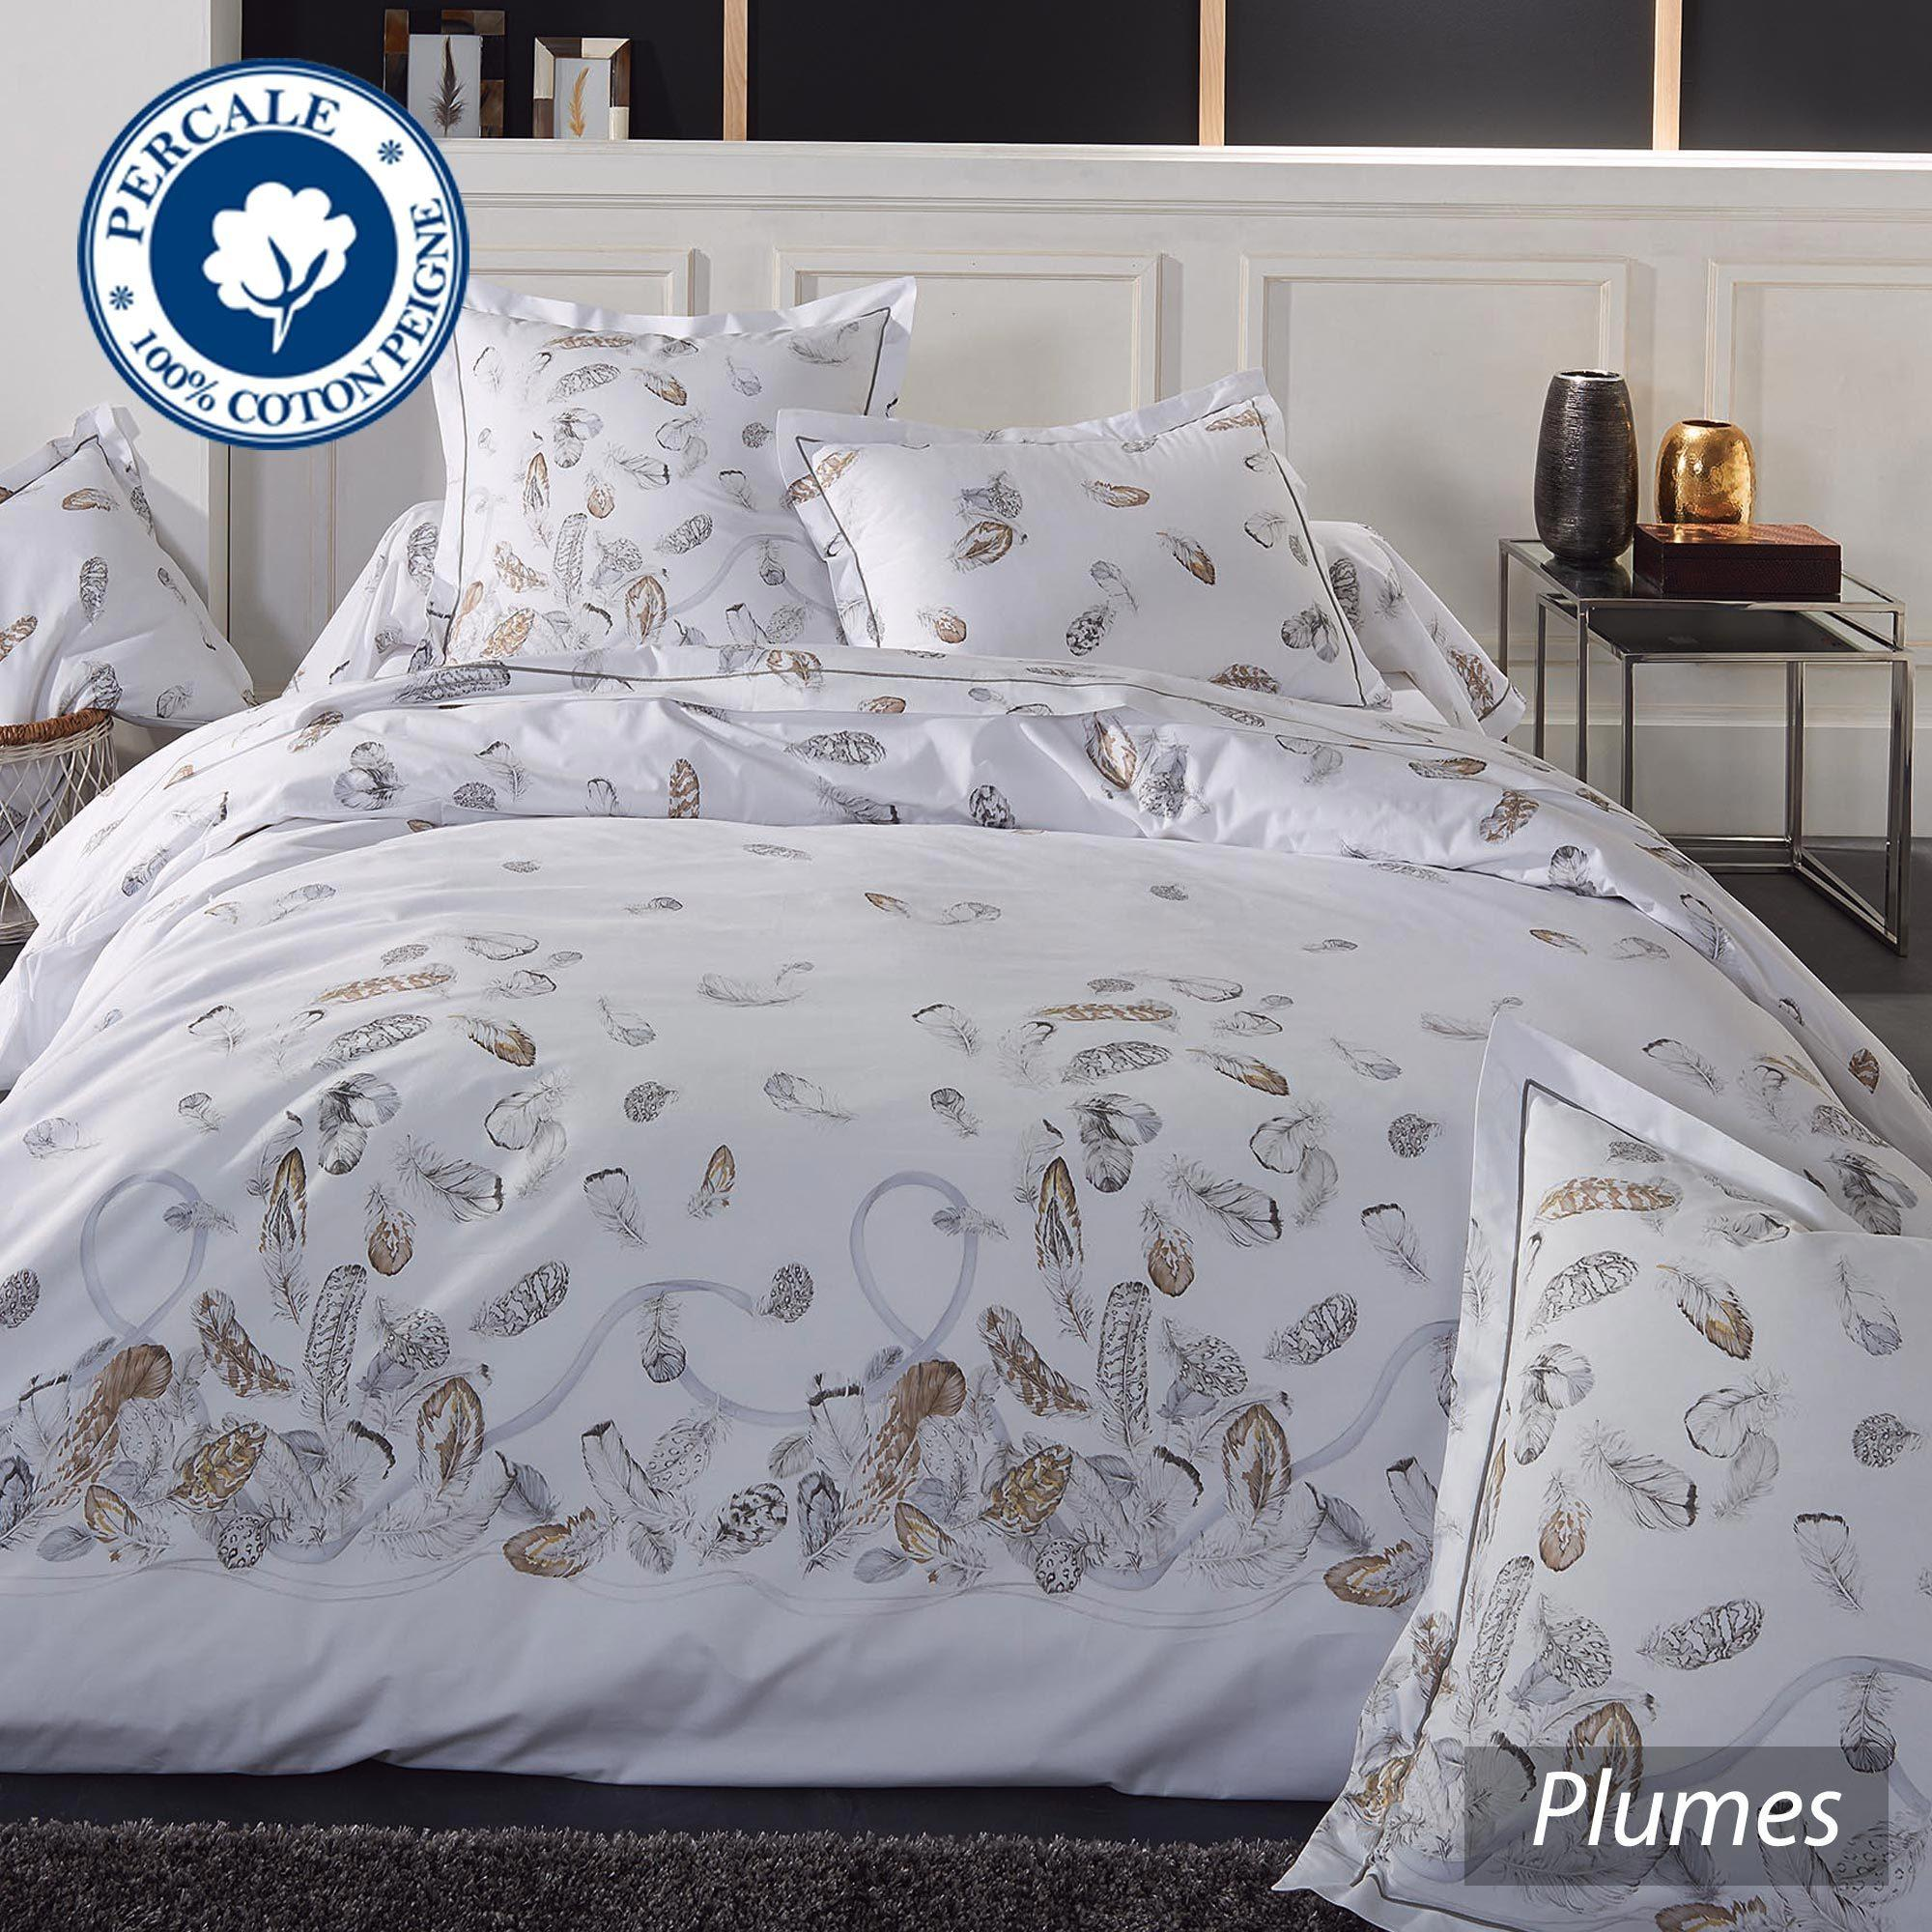 parure de lit percale pur coton peign 200x200 cm plumes. Black Bedroom Furniture Sets. Home Design Ideas